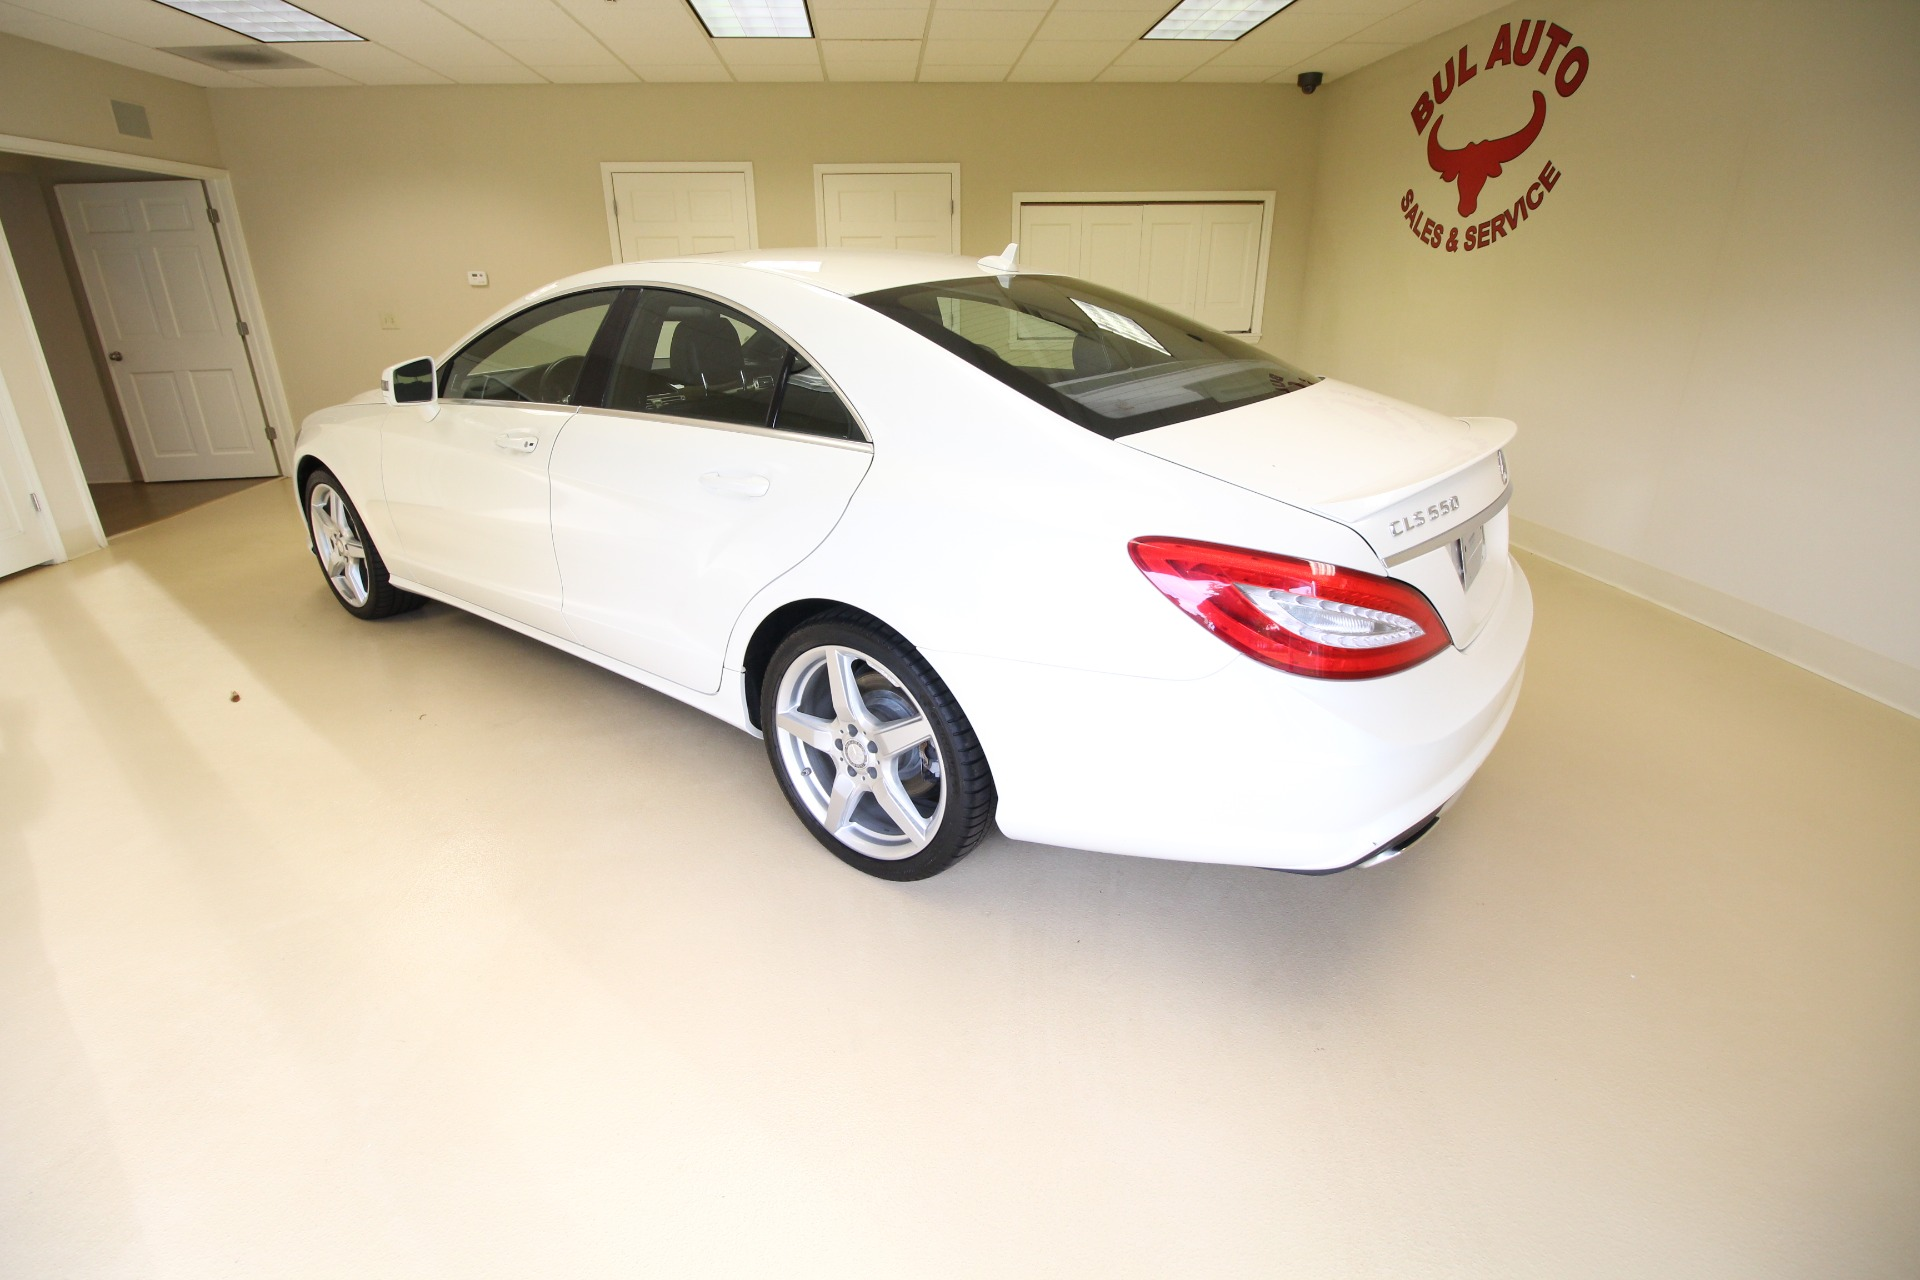 Used 2012 Mercedes-Benz CLS-Class CLS550 DIAMOND WHITE SUPER CLEAN SUPER LOW MILES | Albany, NY